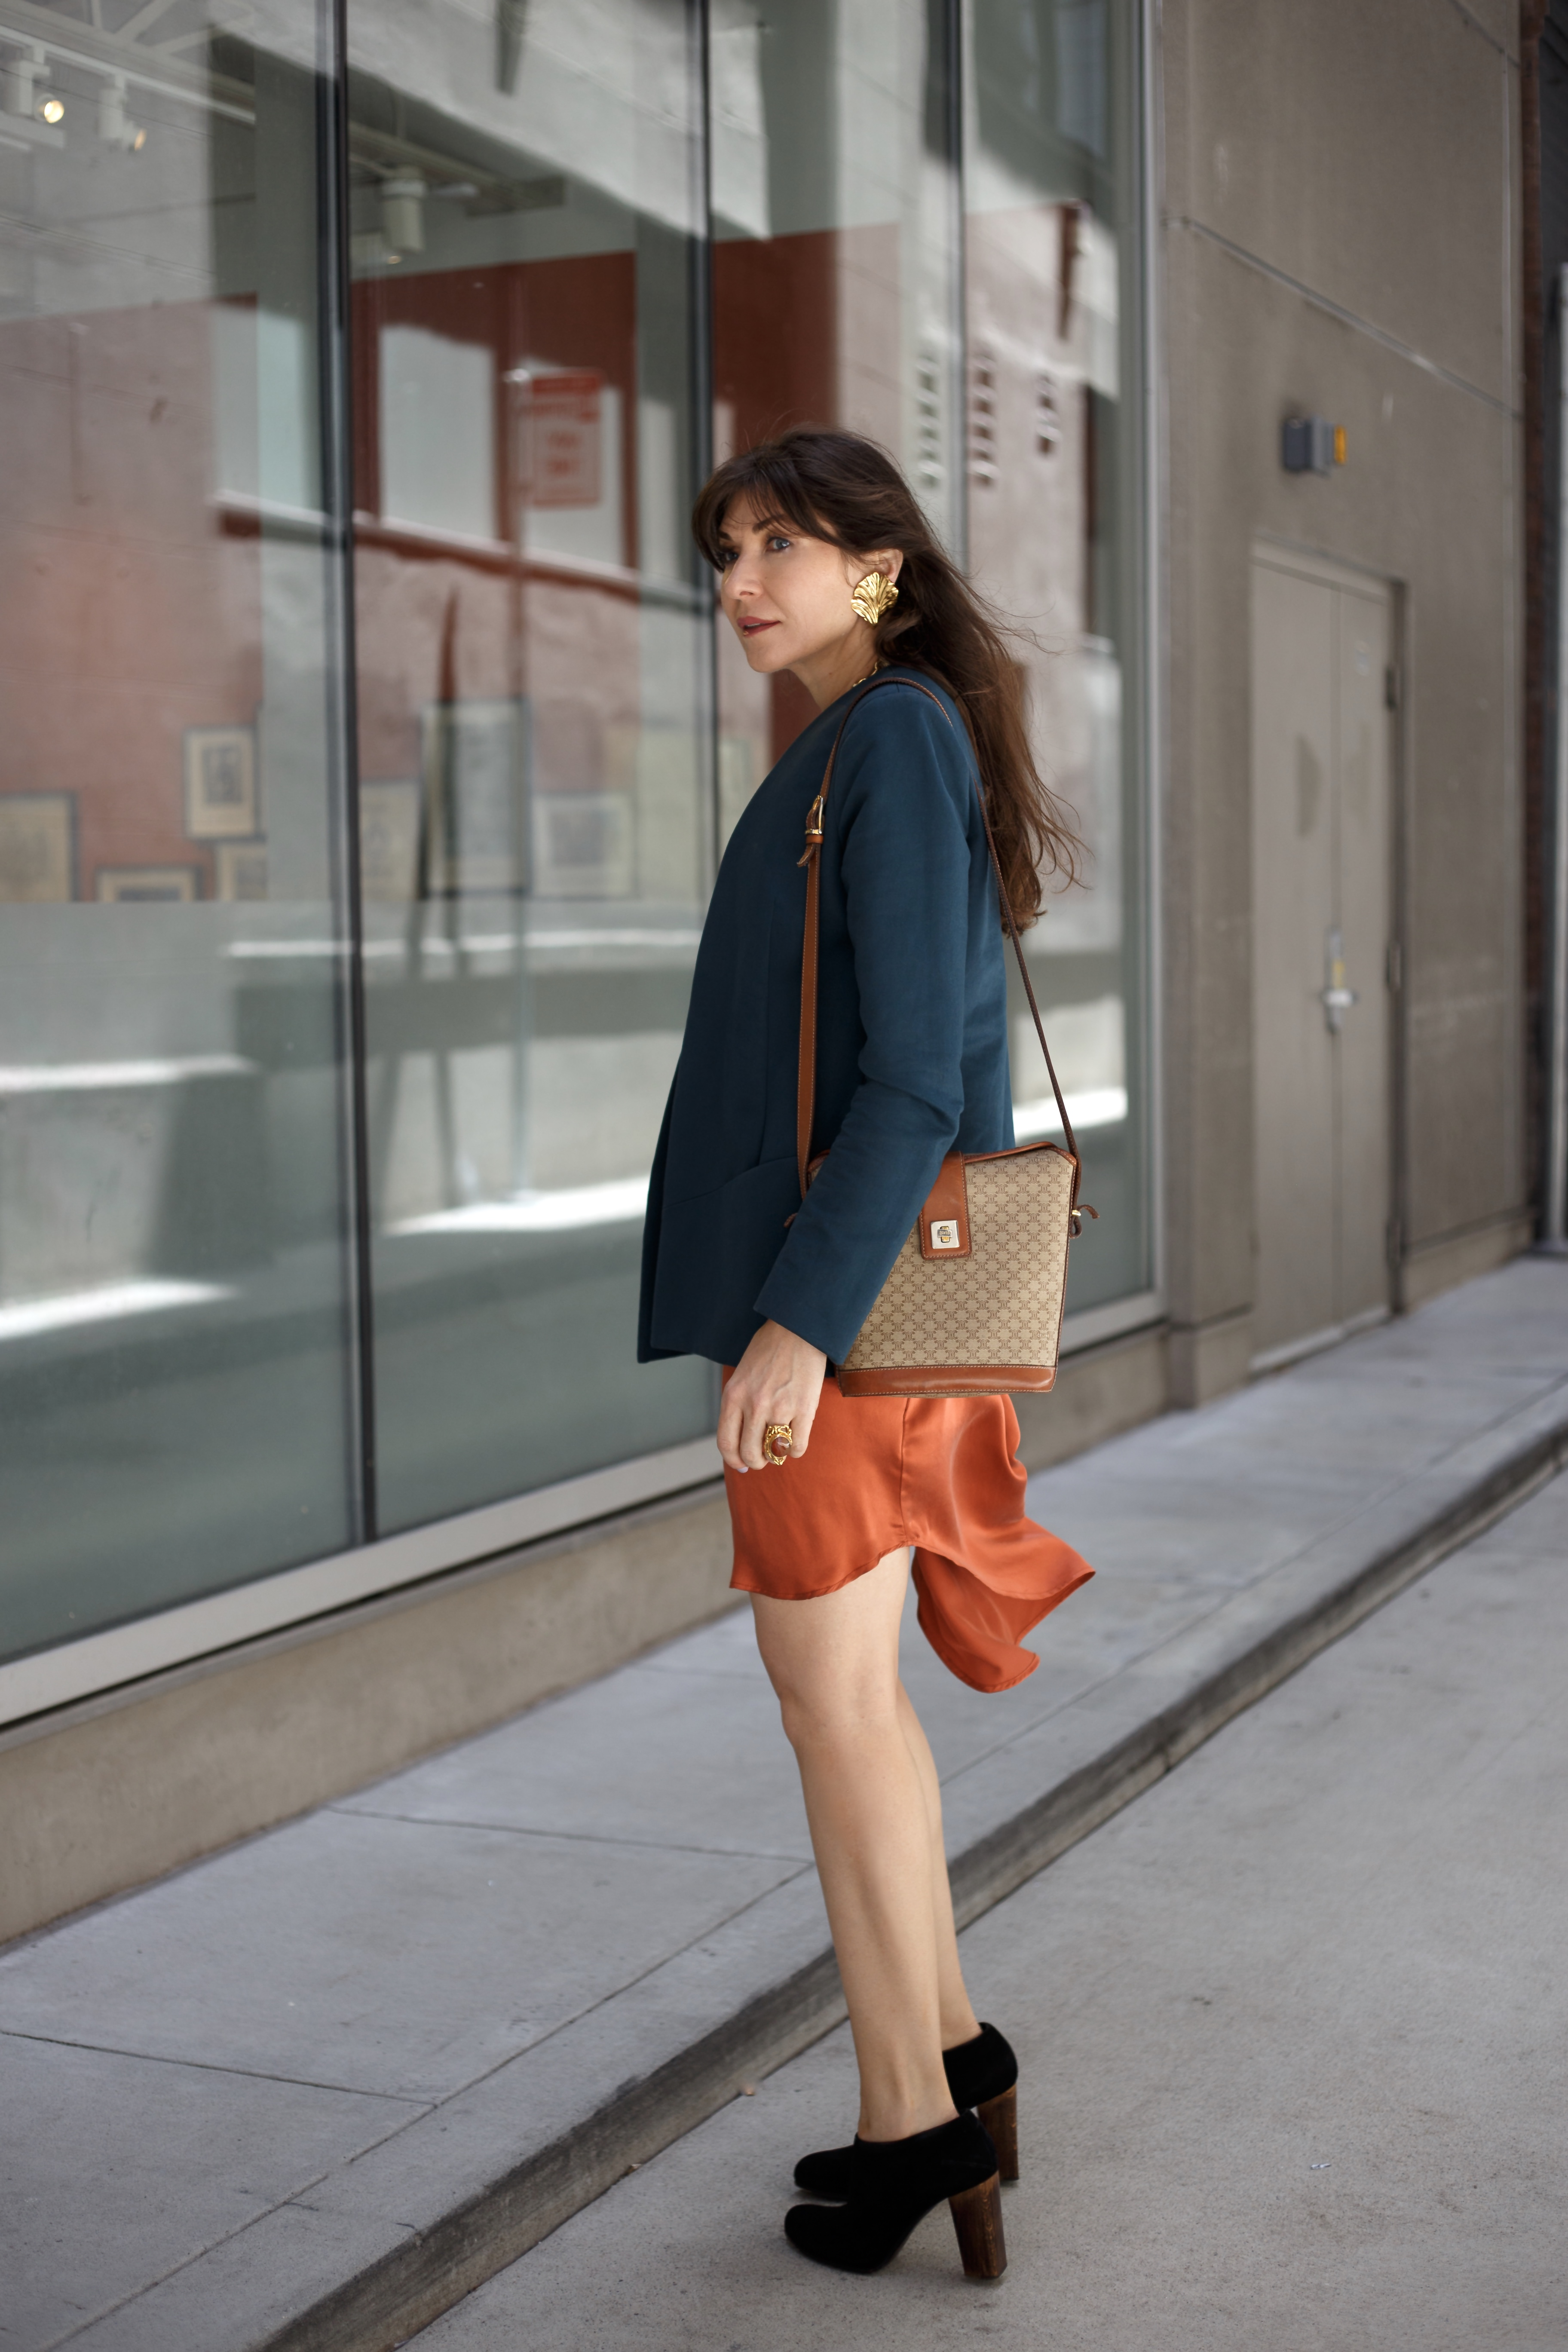 Spring uniform: rust dress and teal blazer.